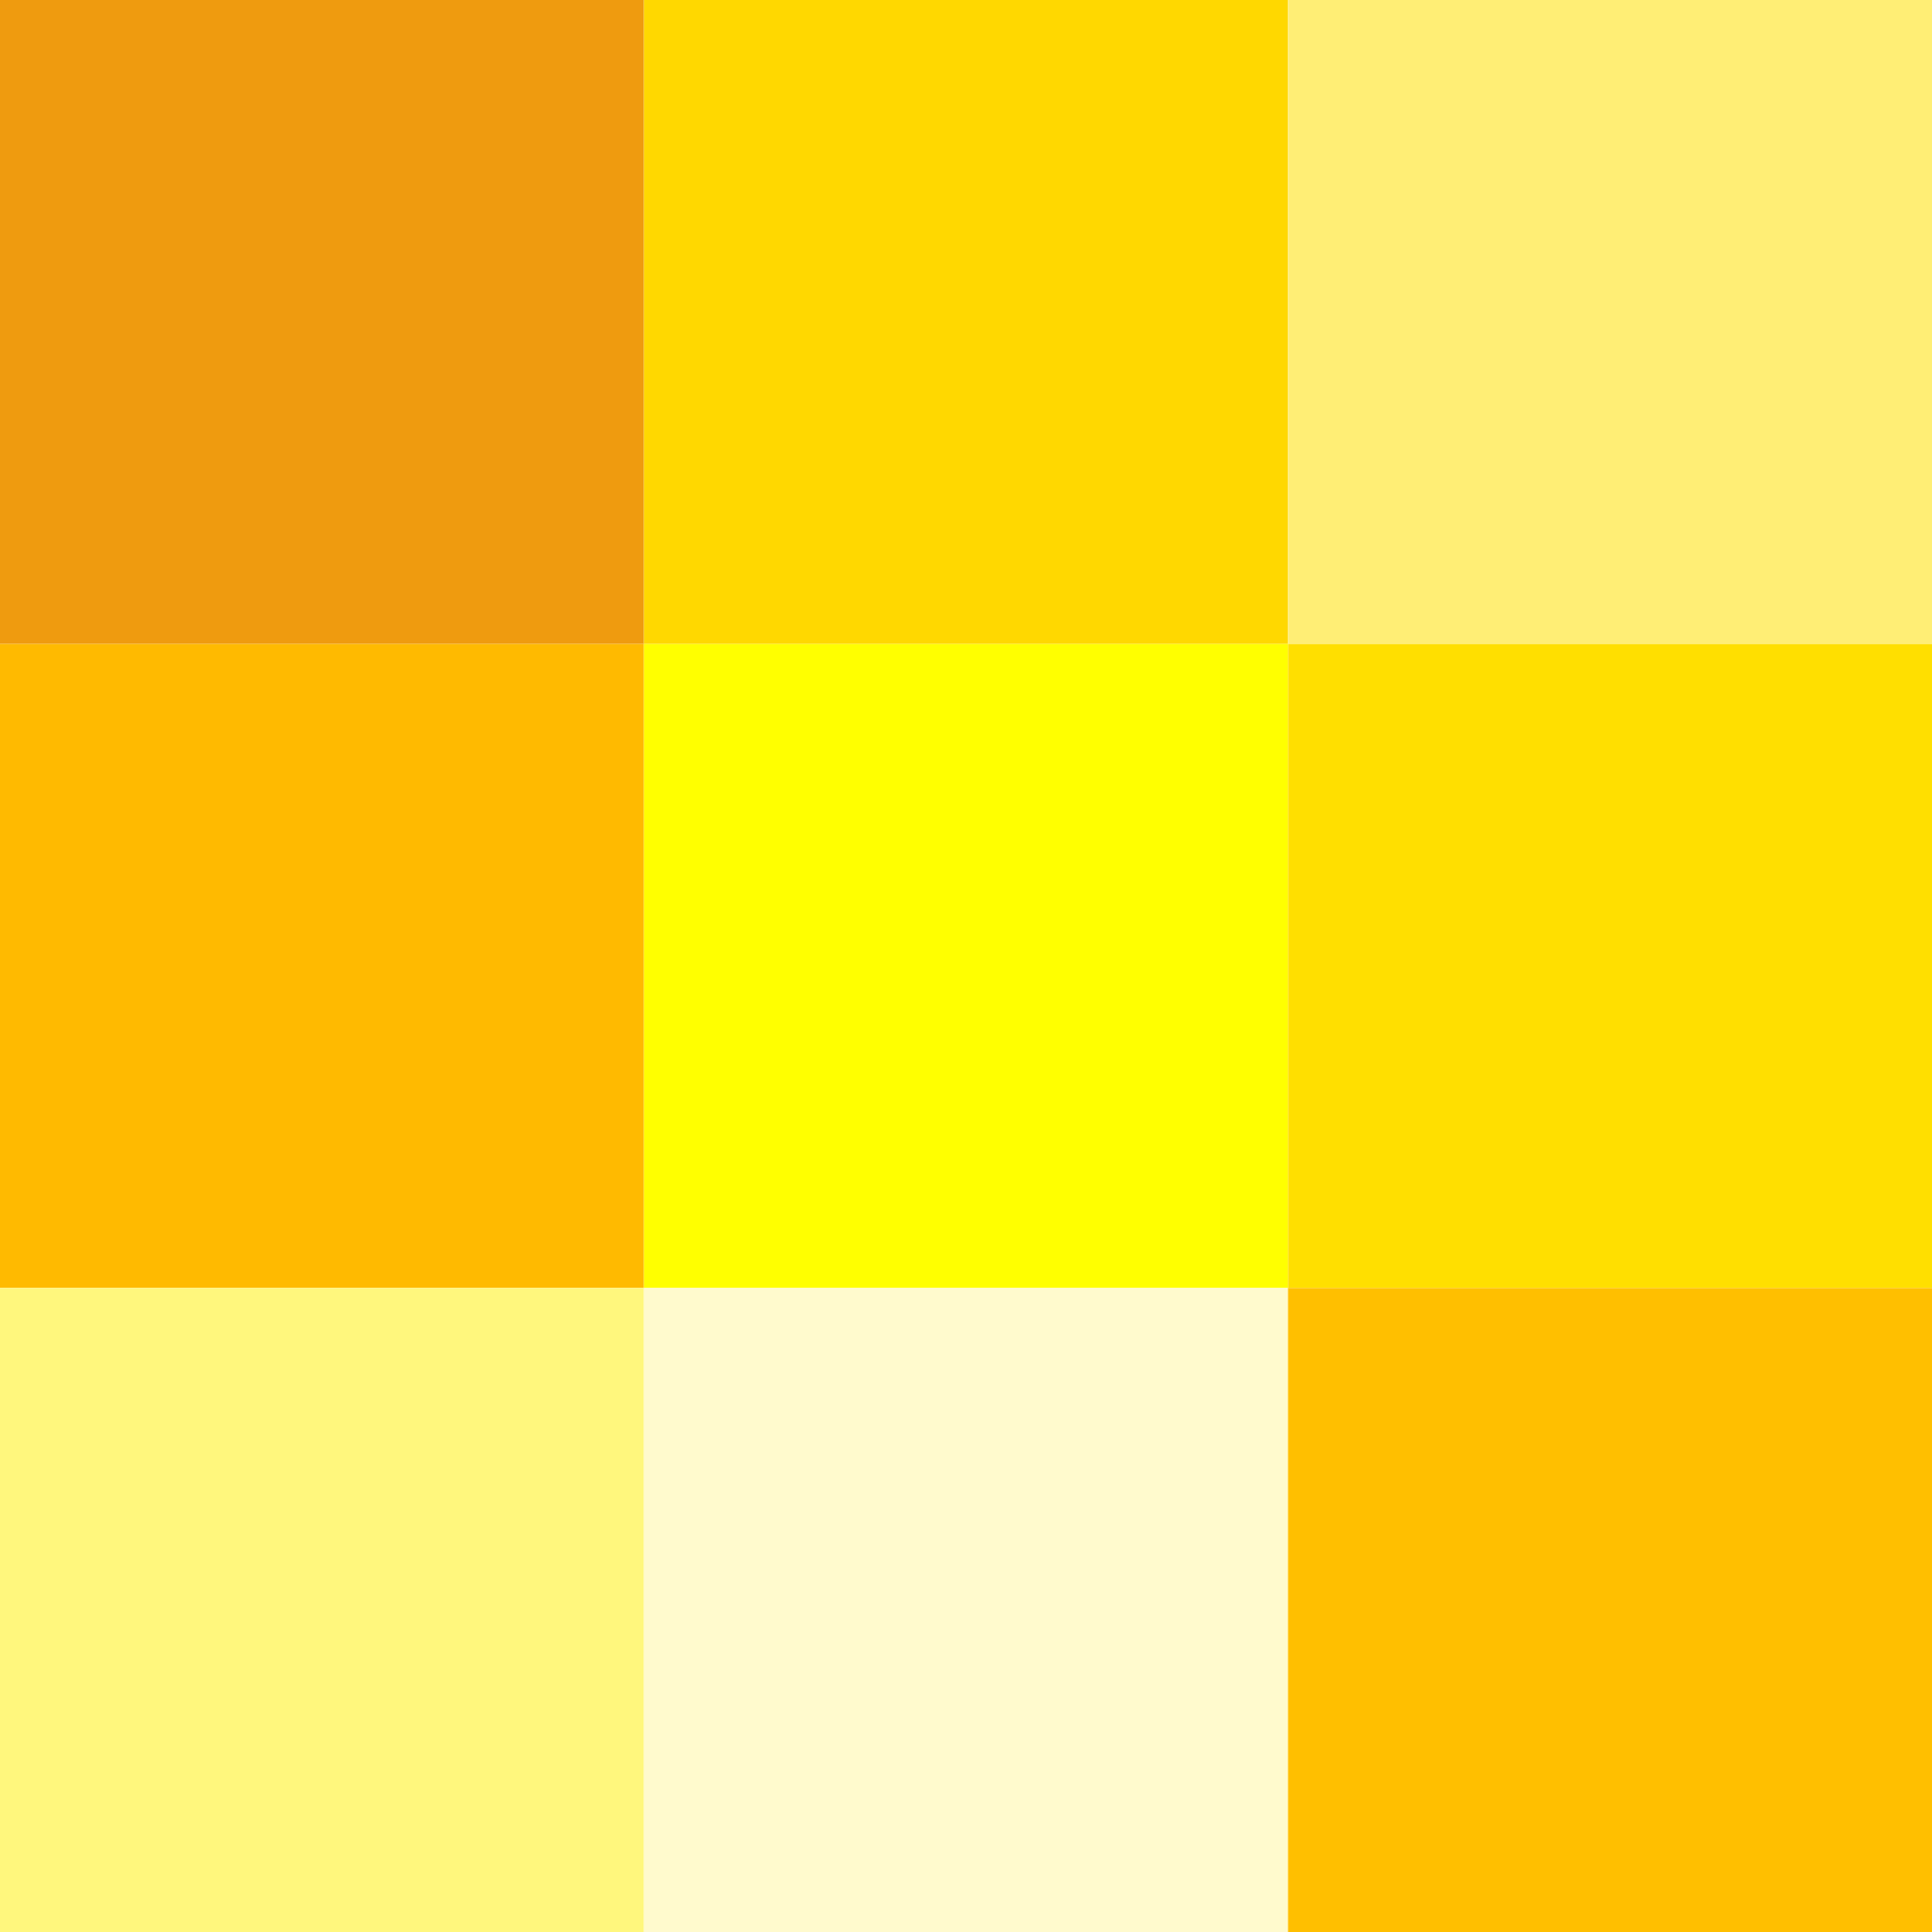 Colors Of Yellow what color is your happiness? | playbuzz